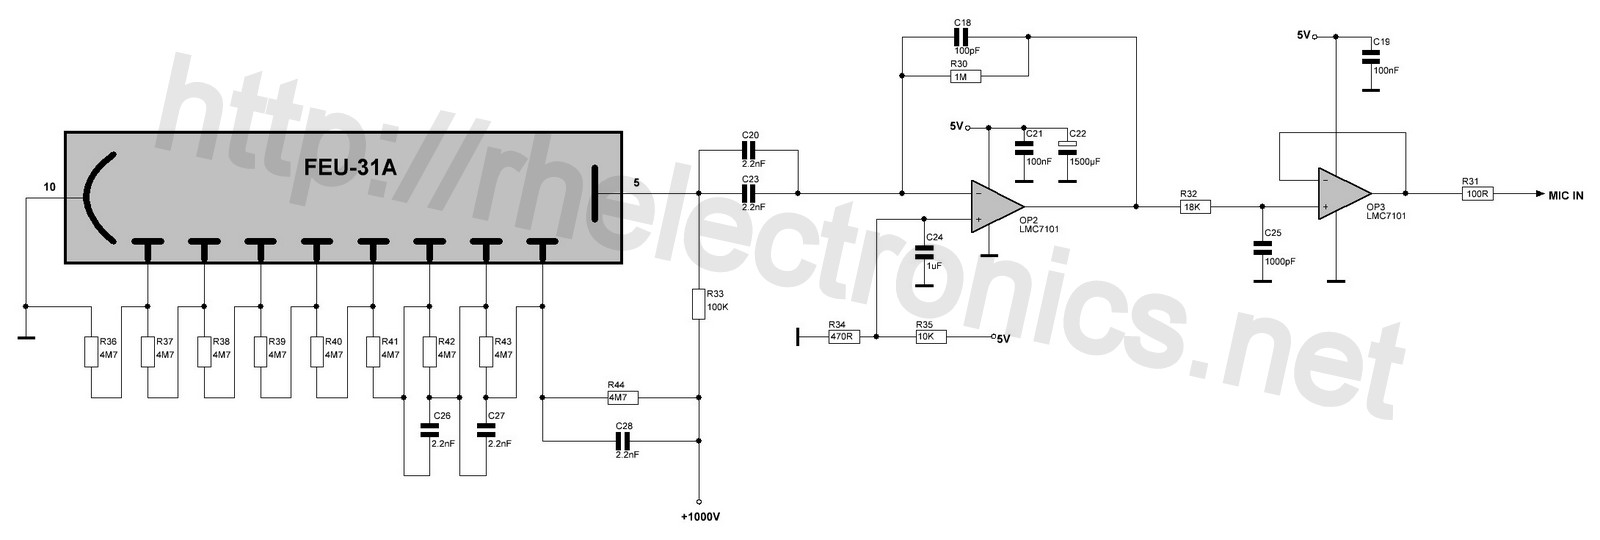 Sciencemadness Discussion Board Recommendations For Geiger Counter Amplifier Circuit Diagram Projects Feu 31 Divider Pulse Electrical